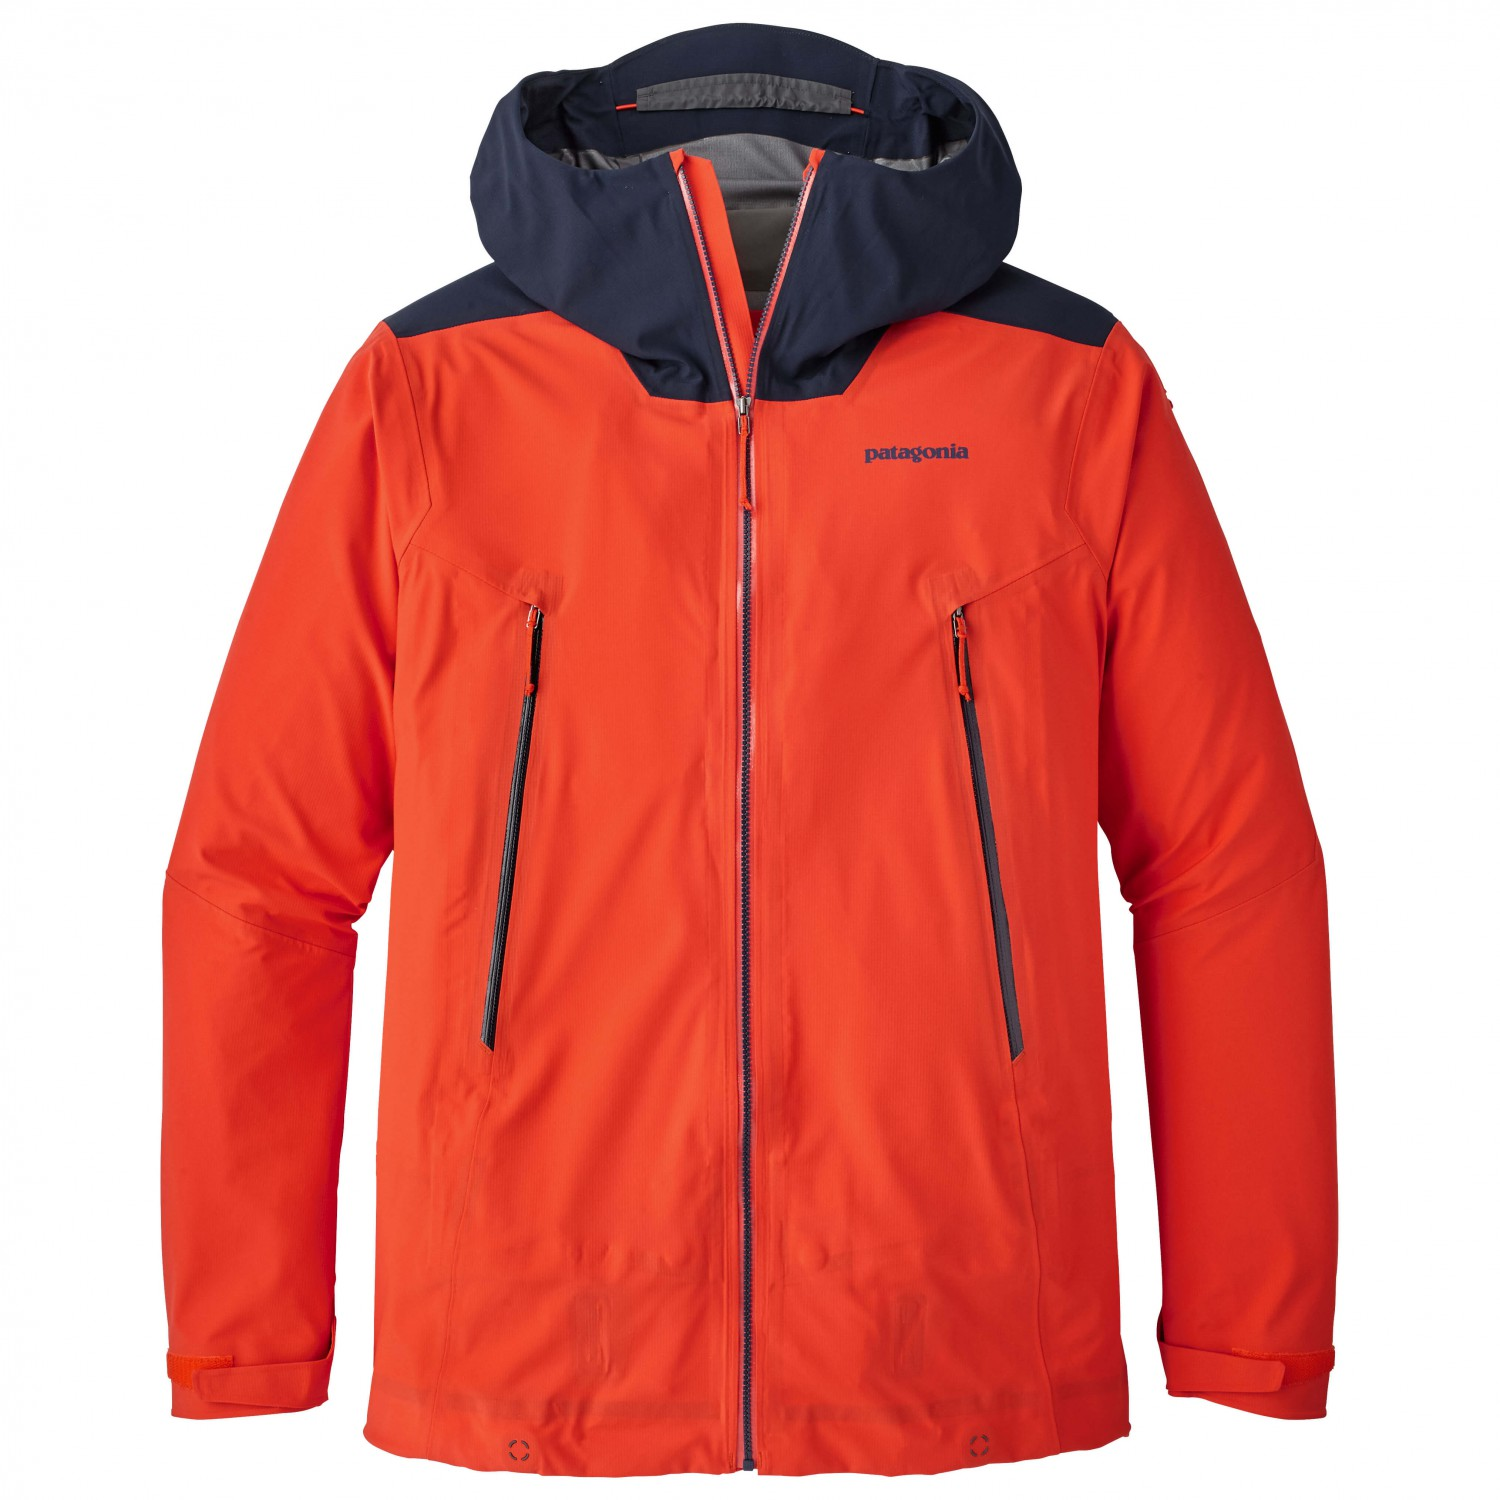 outlet store 46d9d 7d453 Patagonia Descensionist Jacket - Giacca da sci Uomo ...